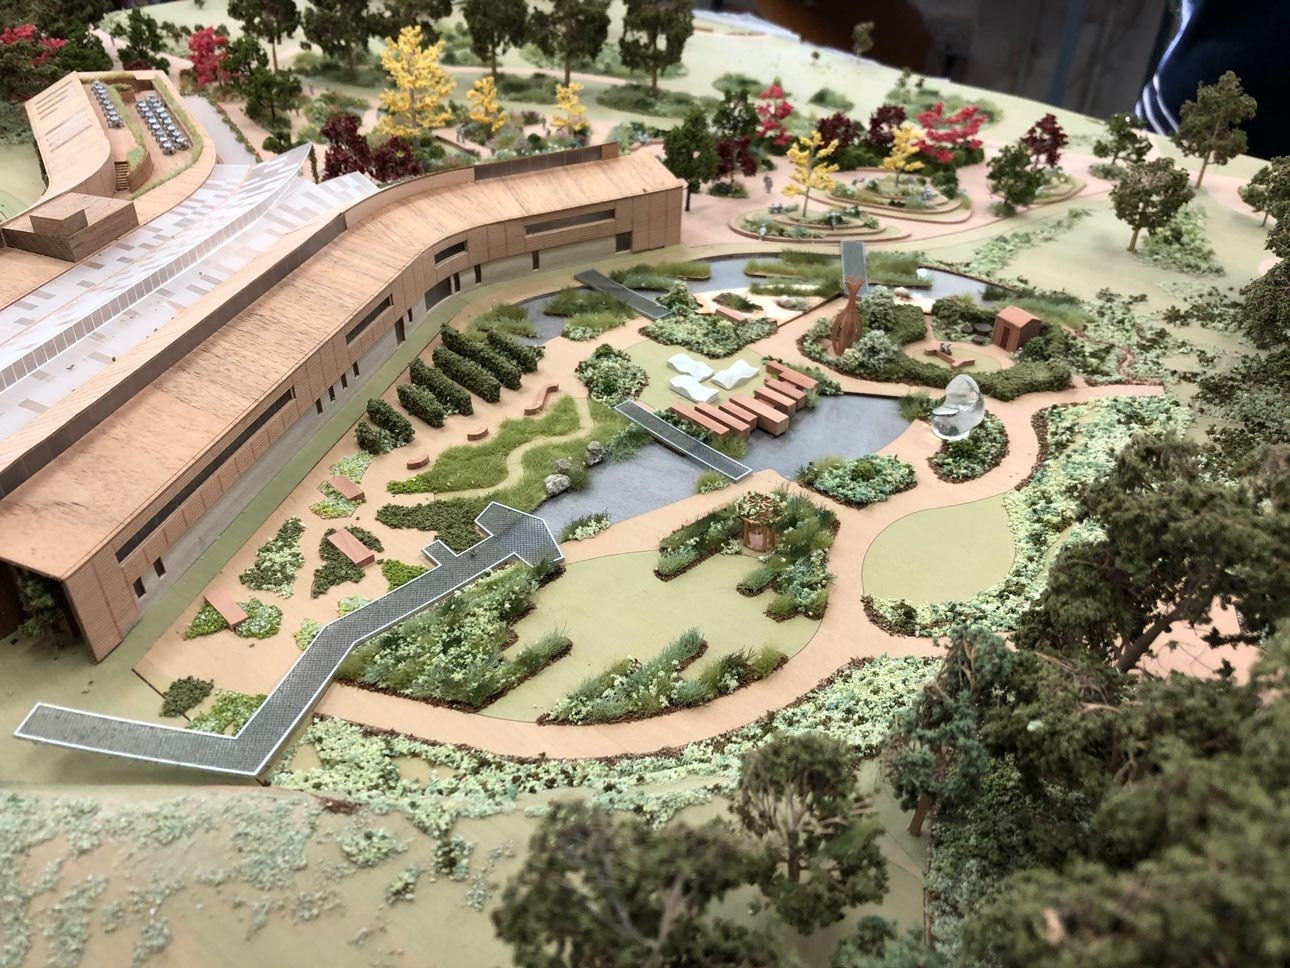 Model of new wildlife garden at Royal Horticultural Society, RHS Wisley, Surrey designed by Ann-Marie Powell Gardens.